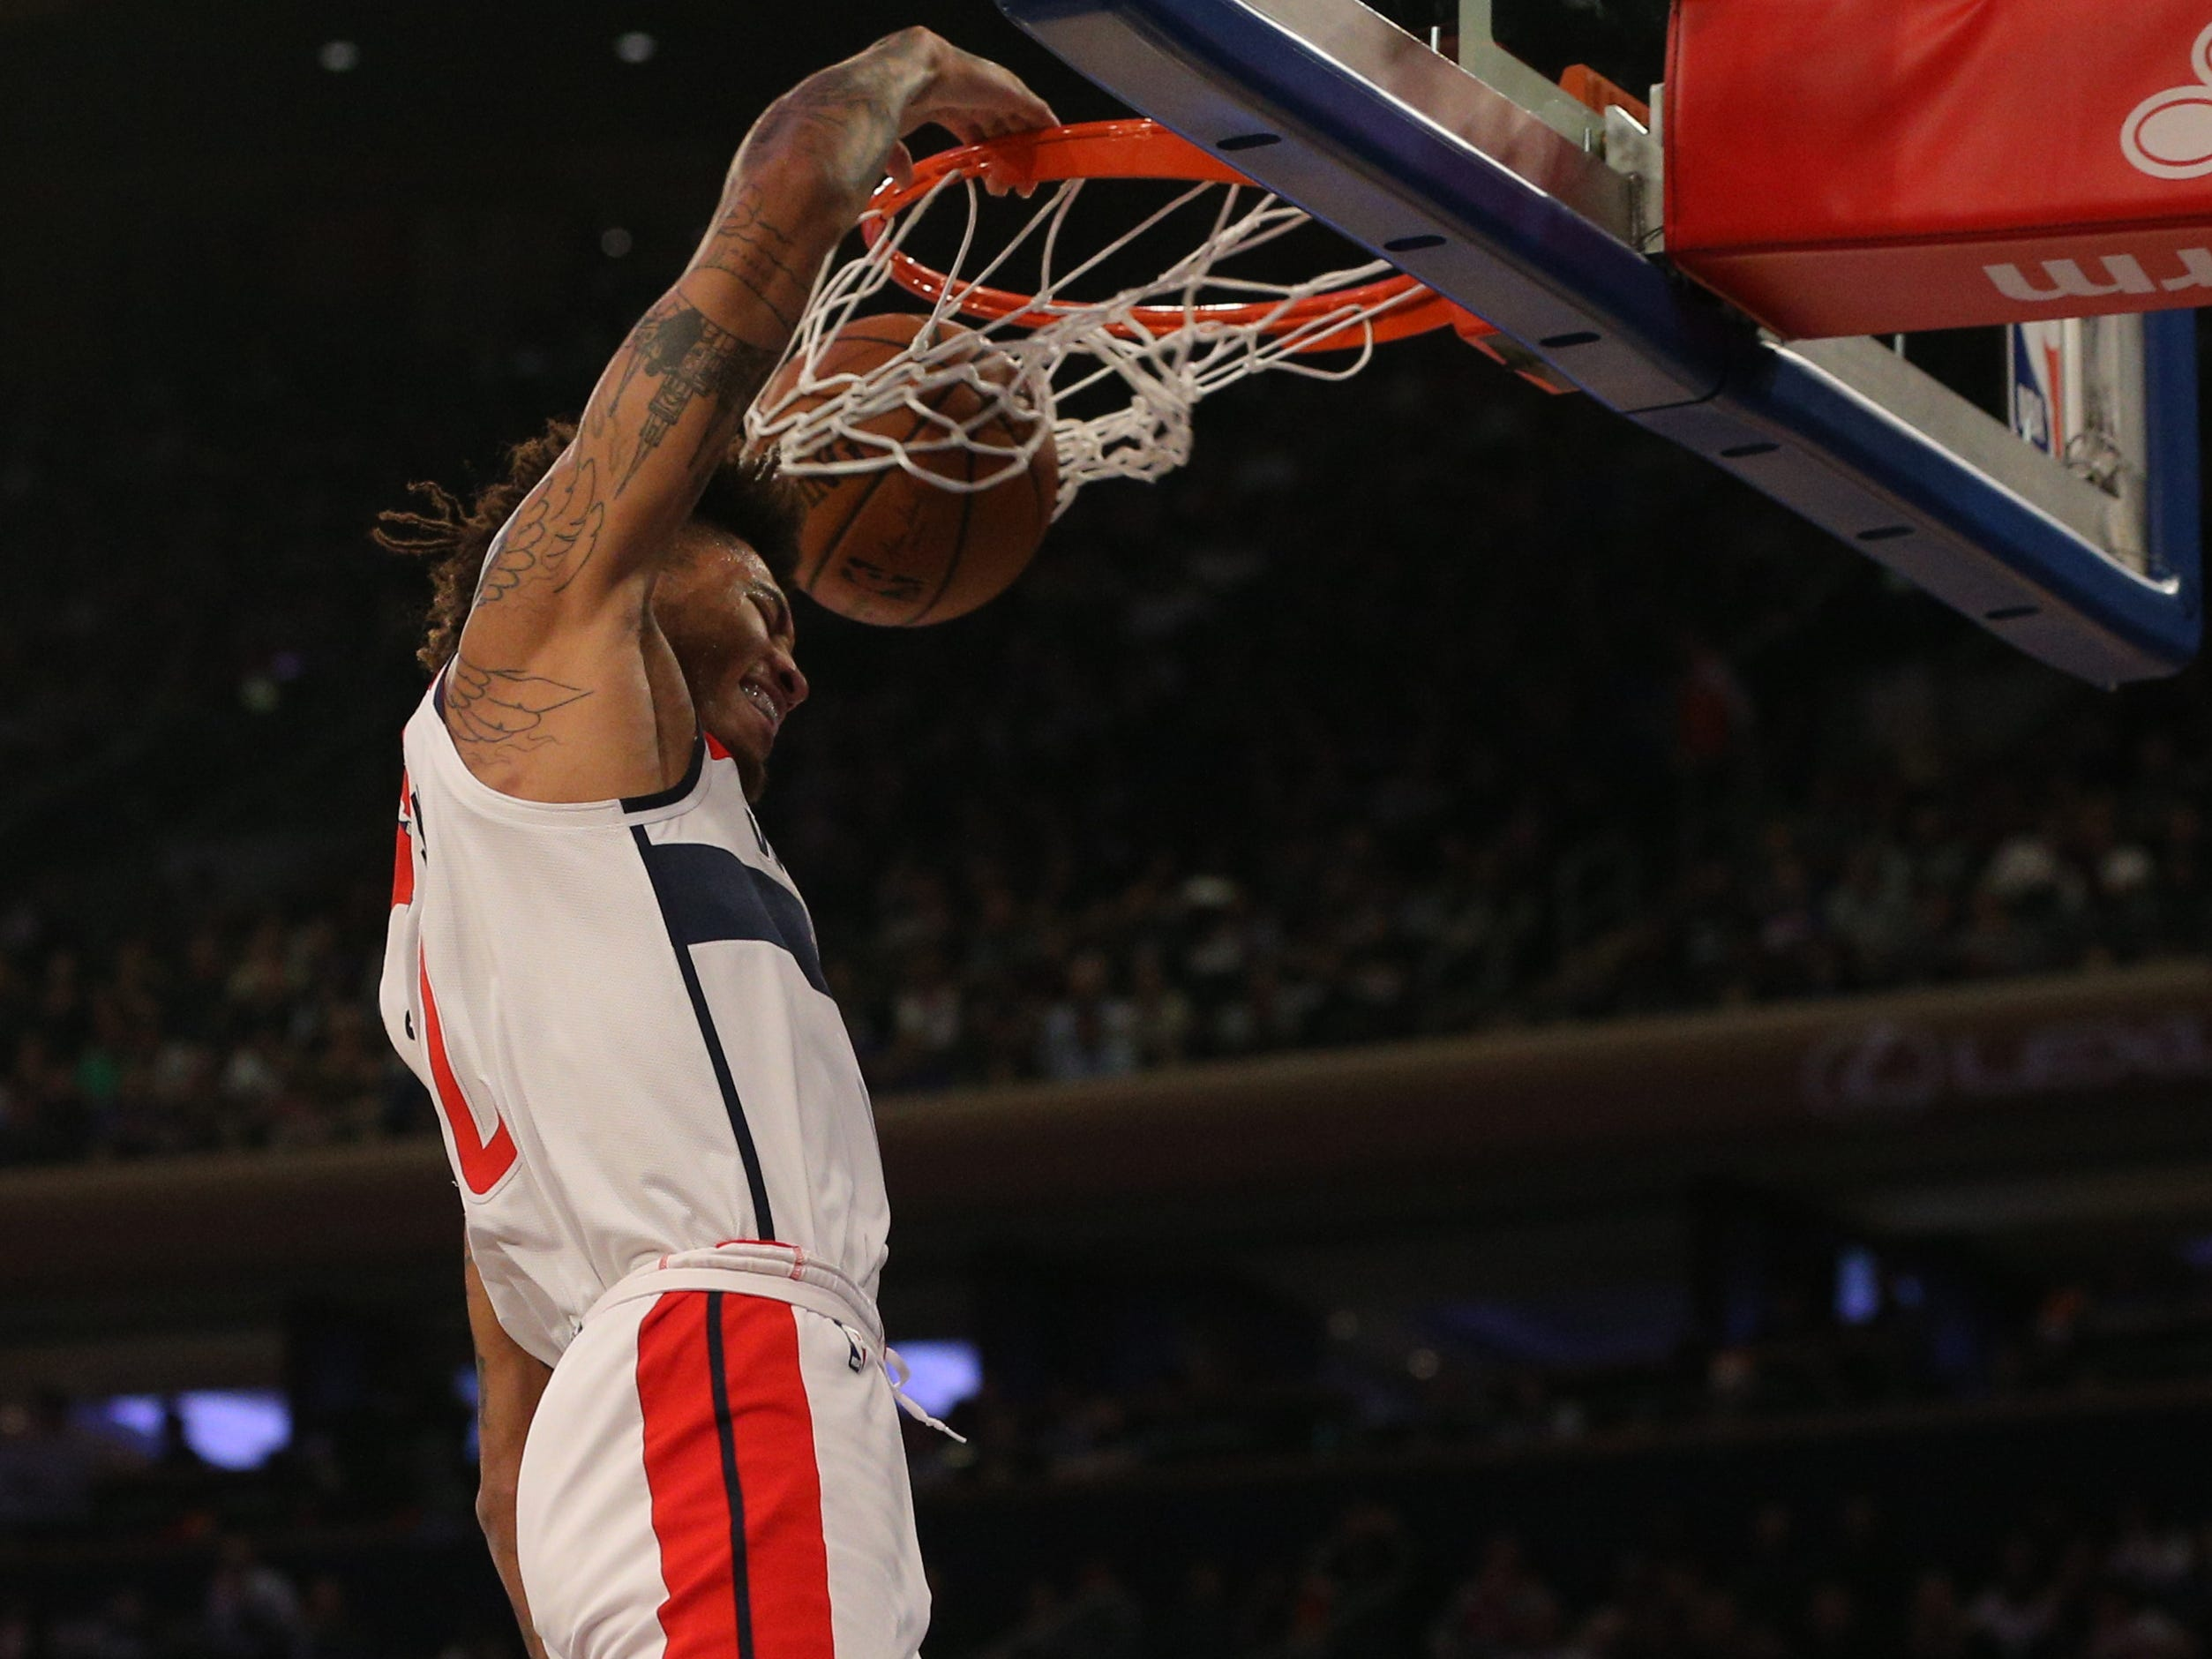 Dec. 3: Kelly Oubre Jr. dunks against the Knicks during the second quarter at Madison Square Garden.